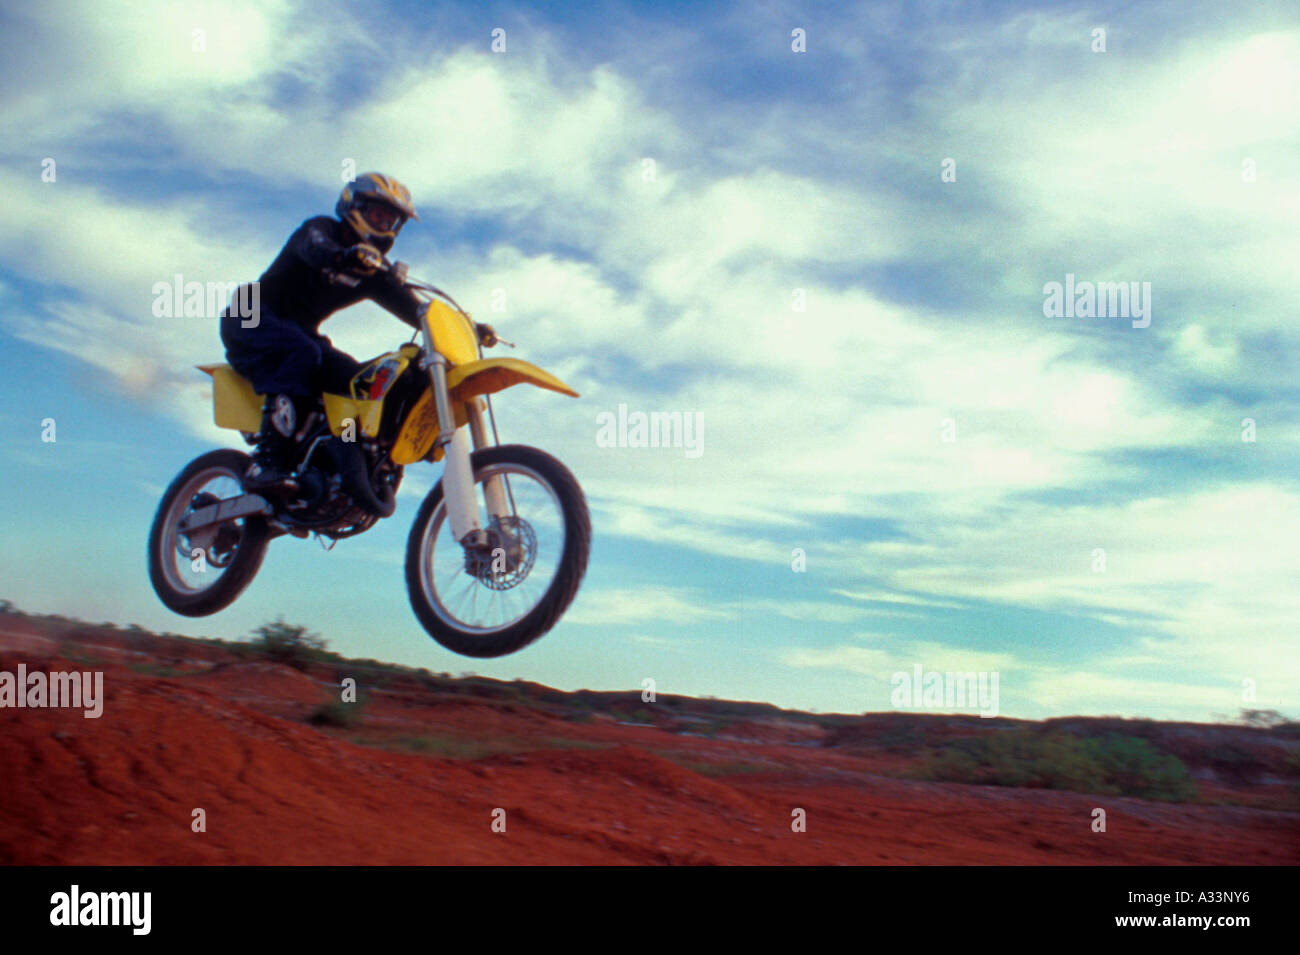 Motocross racing MR802 - Stock Image